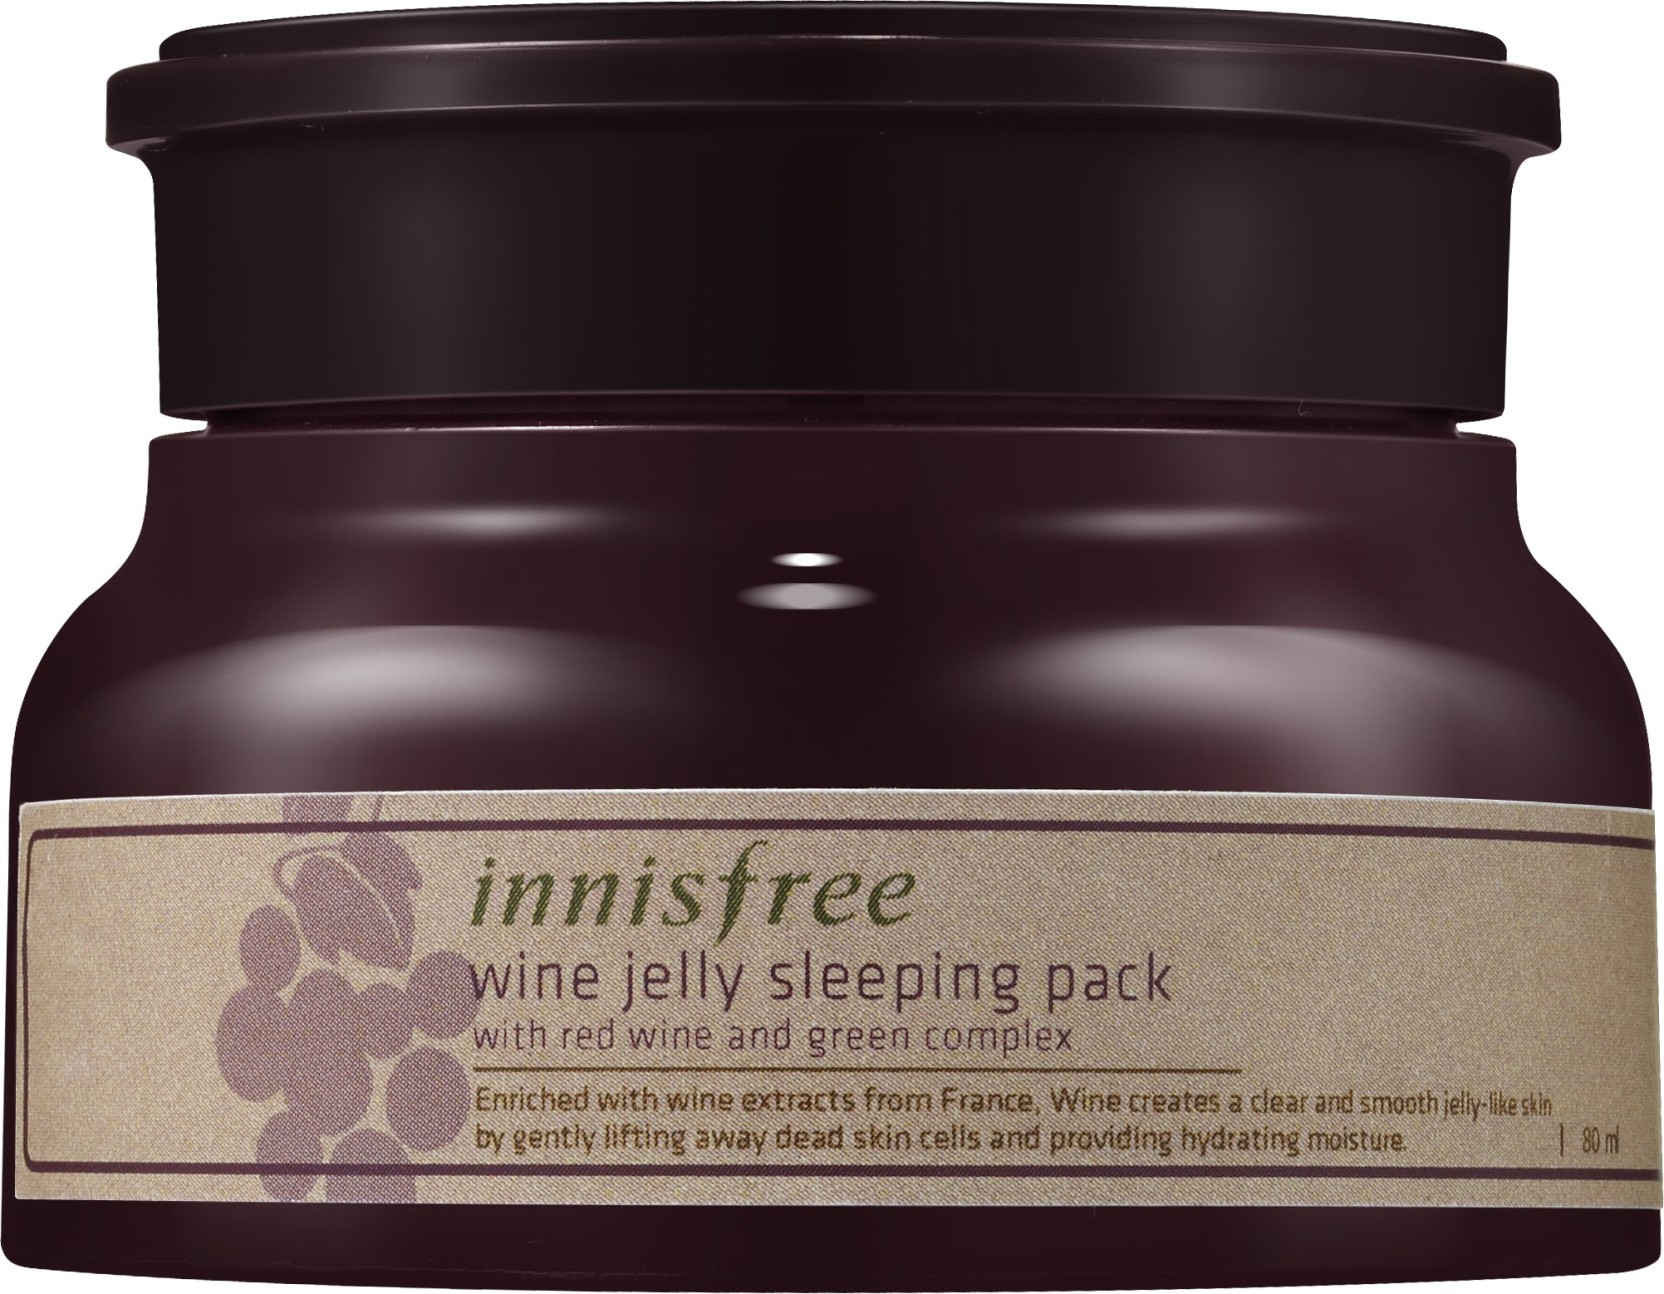 Innisfree Wine Jelly Sleeping Pack Price In India Buy Orchid 80ml Share